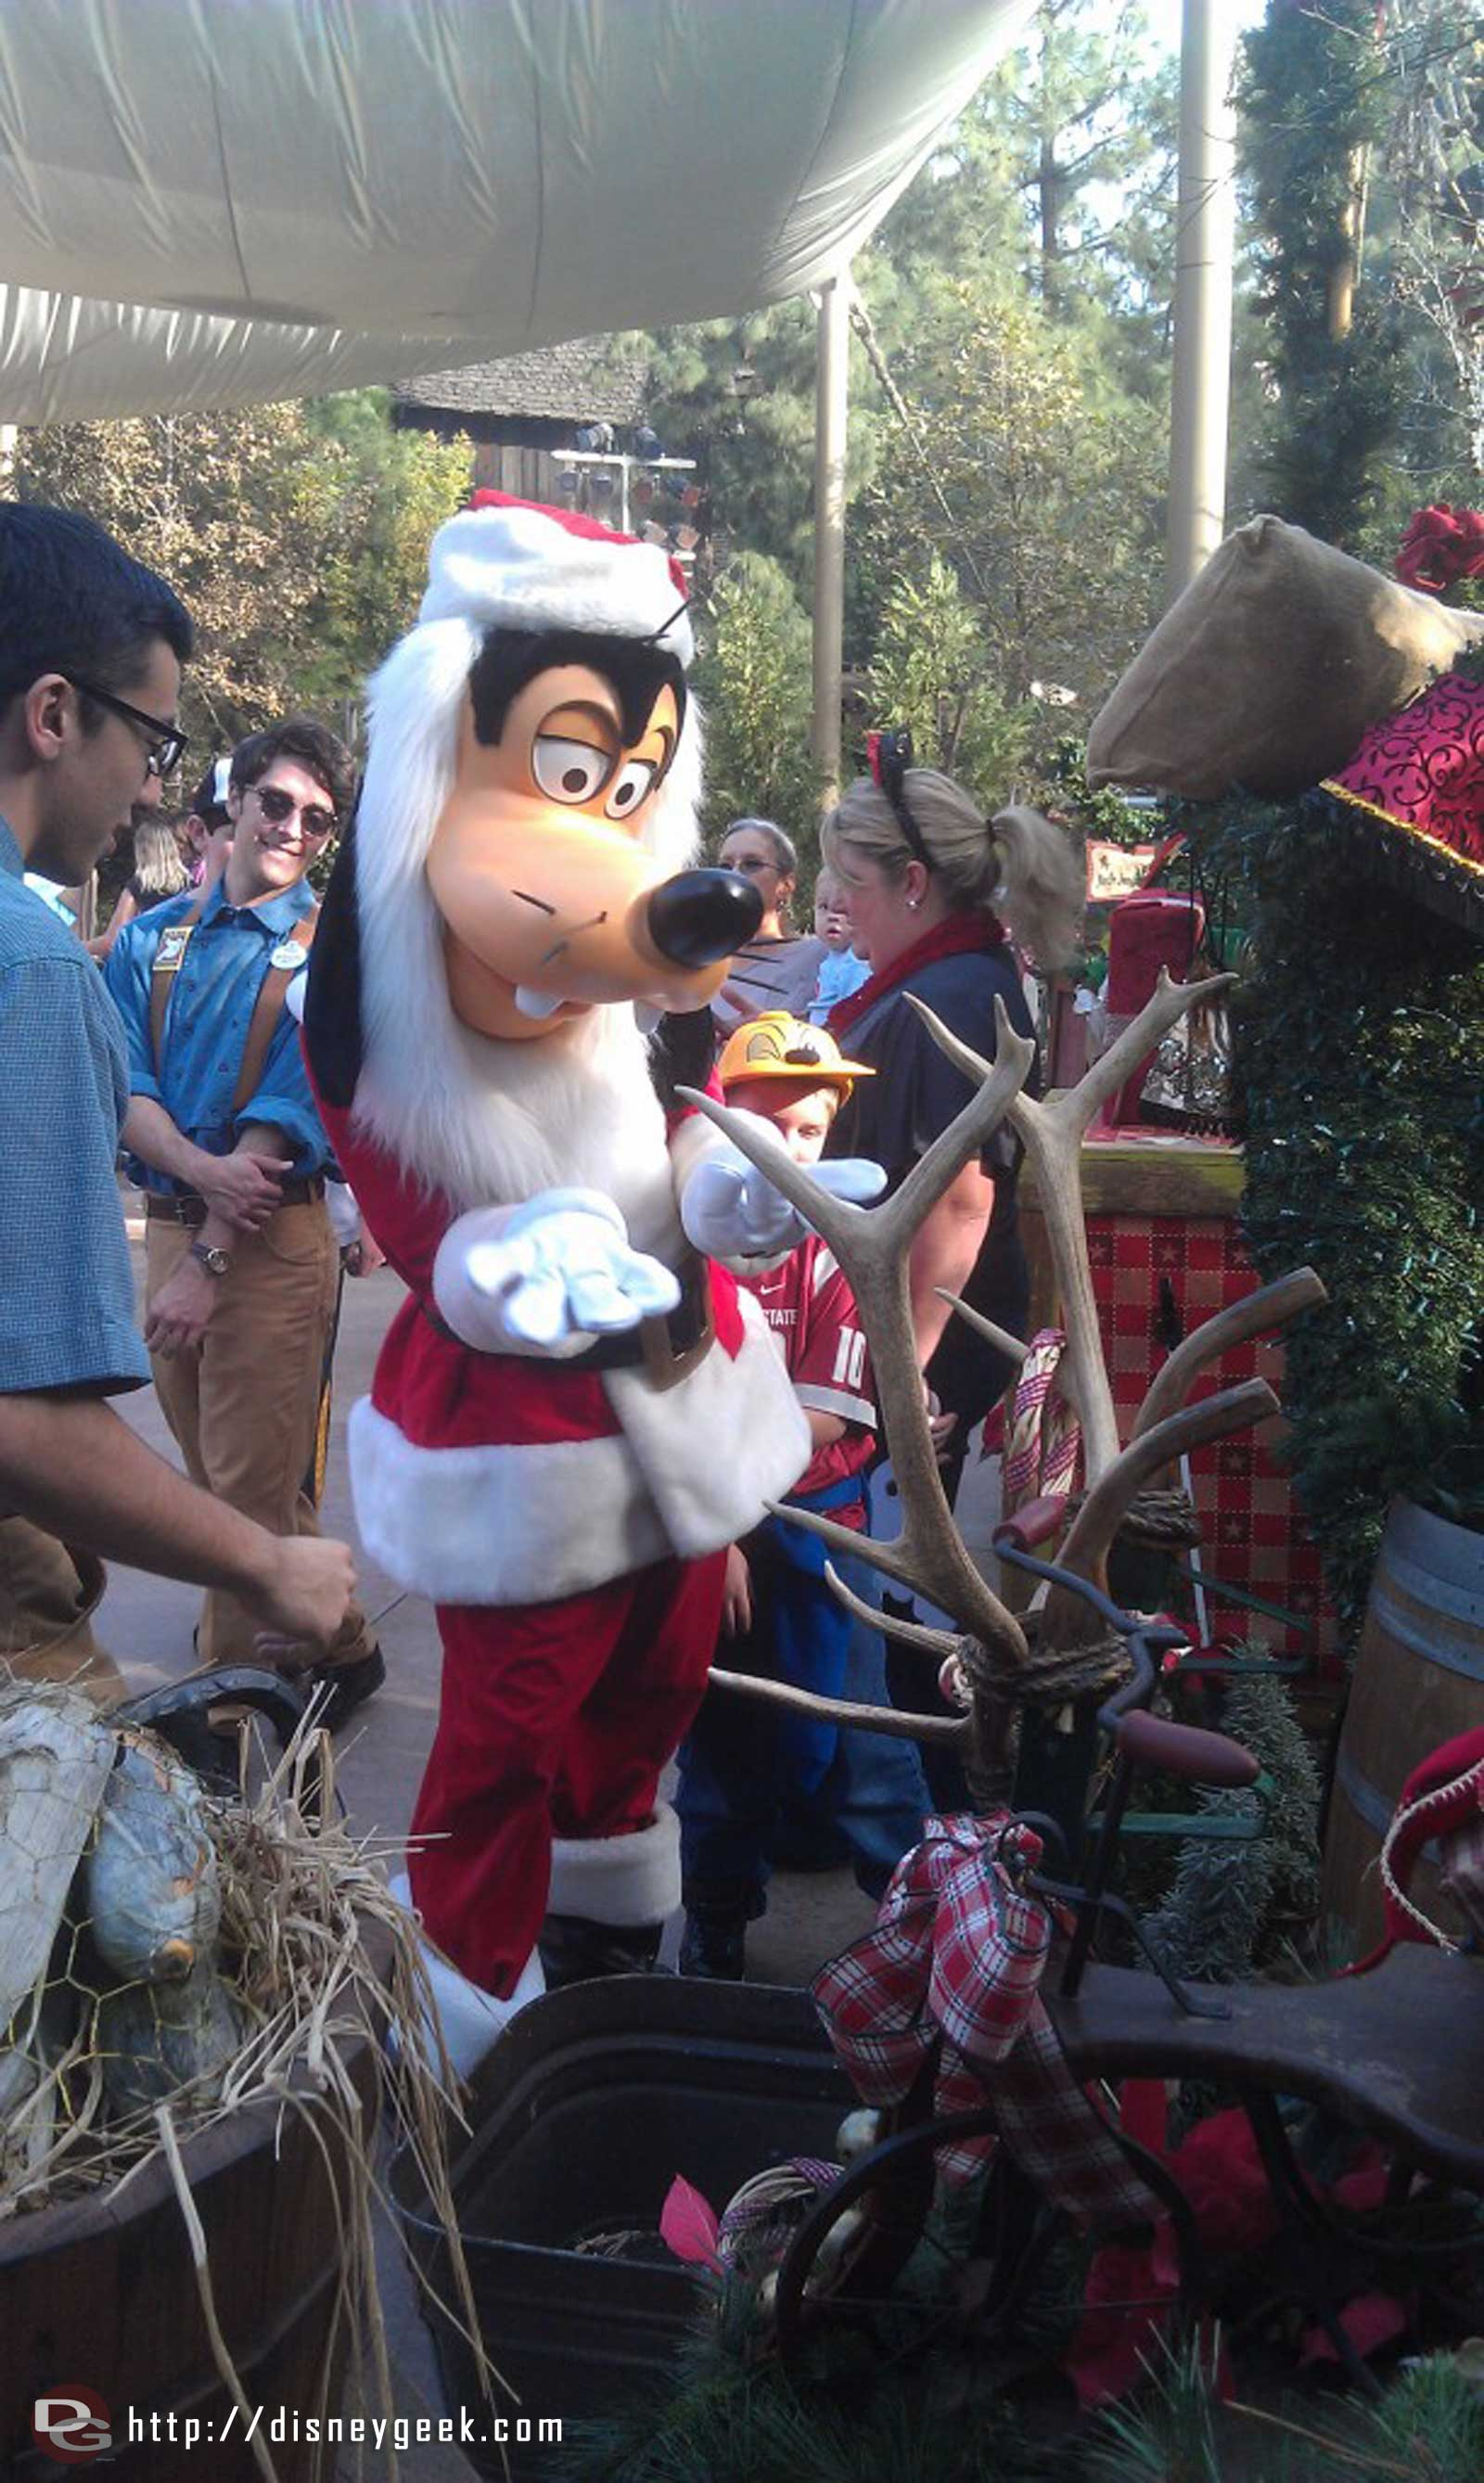 Goofy playing some Reindeer Games at the Jingle Jangle Jamboree.